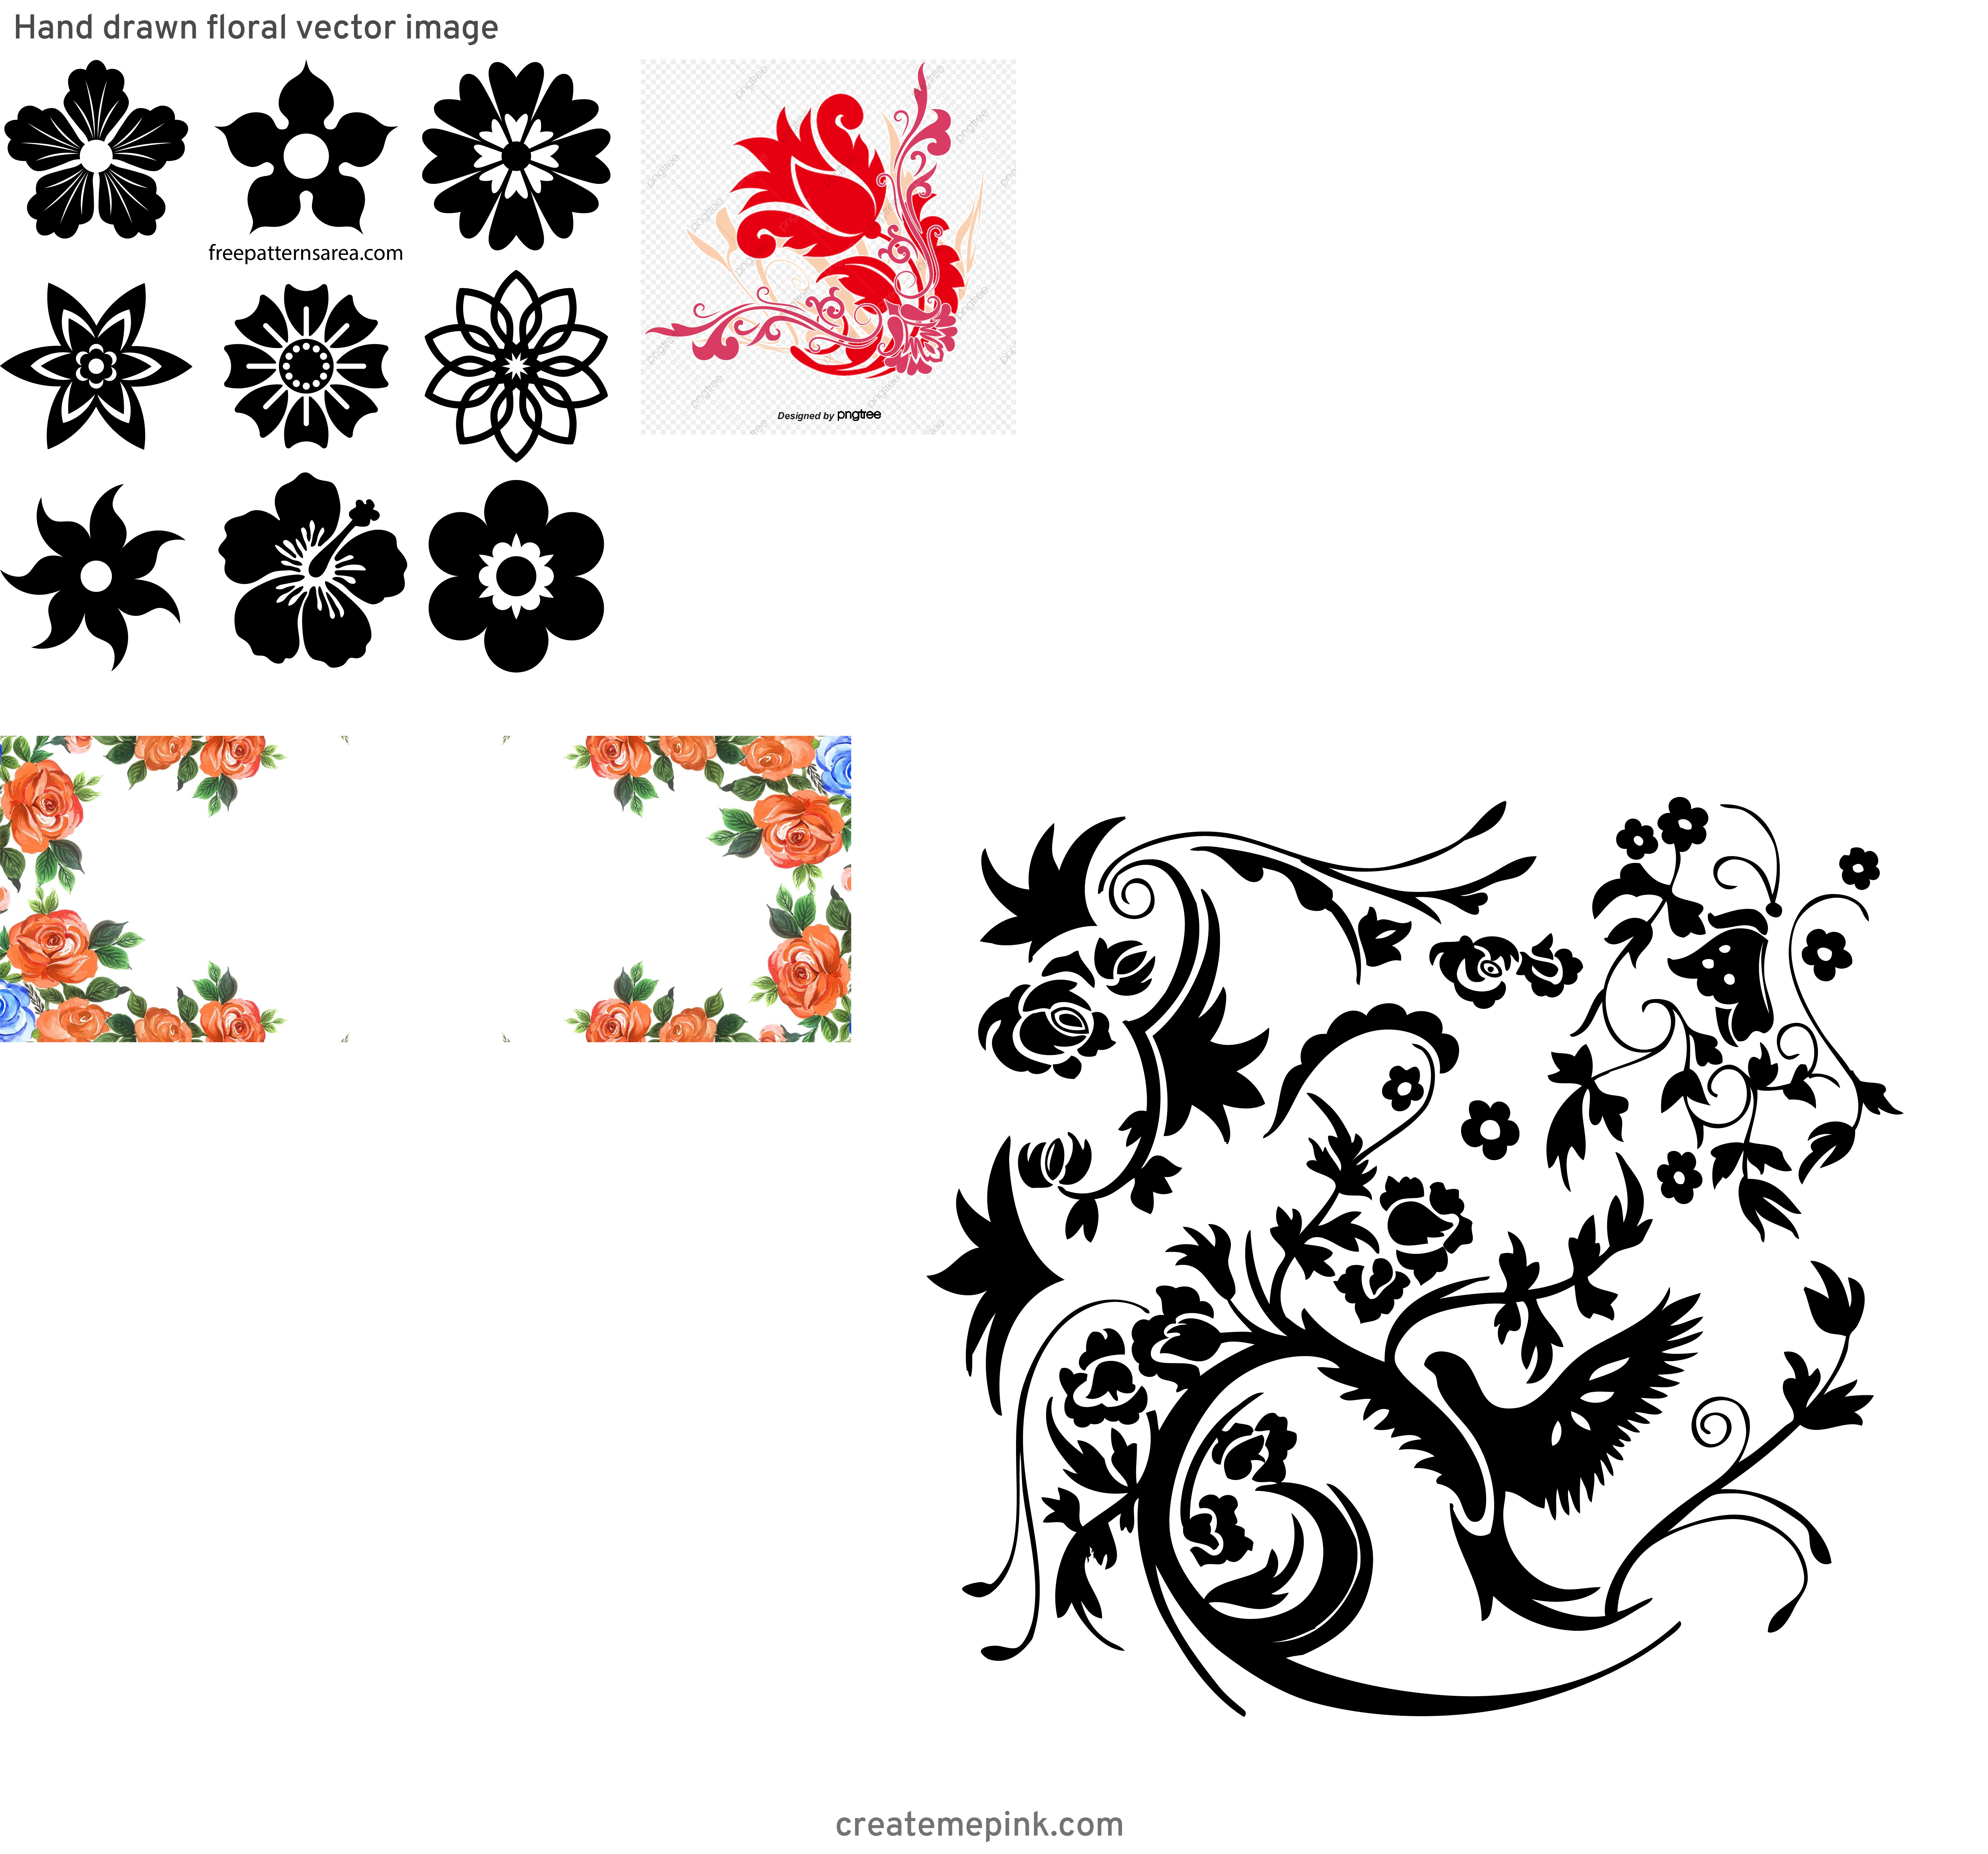 Vector Graphics Floral: Hand Drawn Floral Vector Image